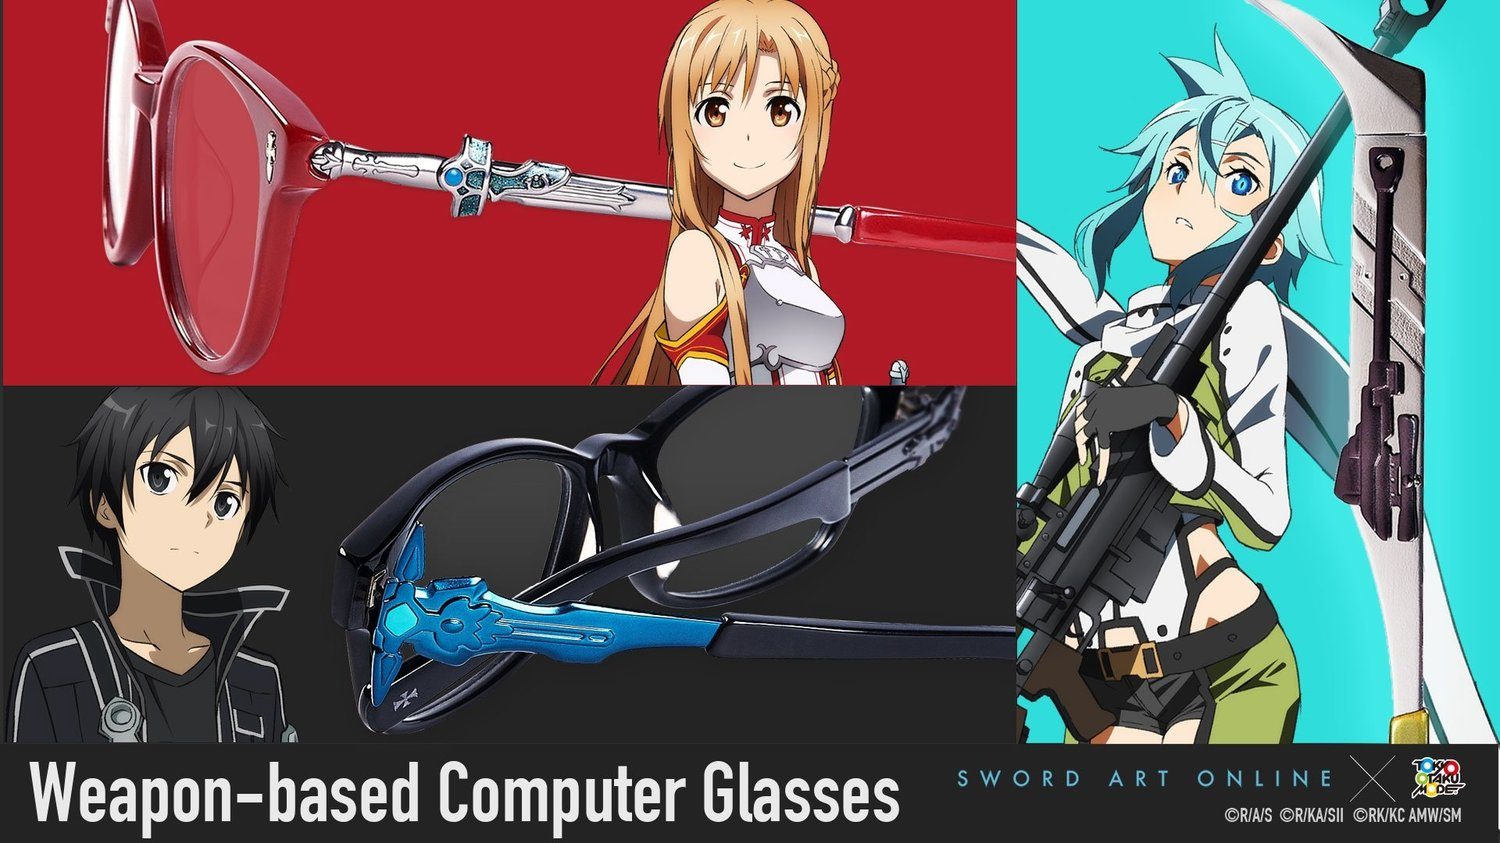 [SAO x TOM] Sword Art Online Weapon-based Computer Glasses